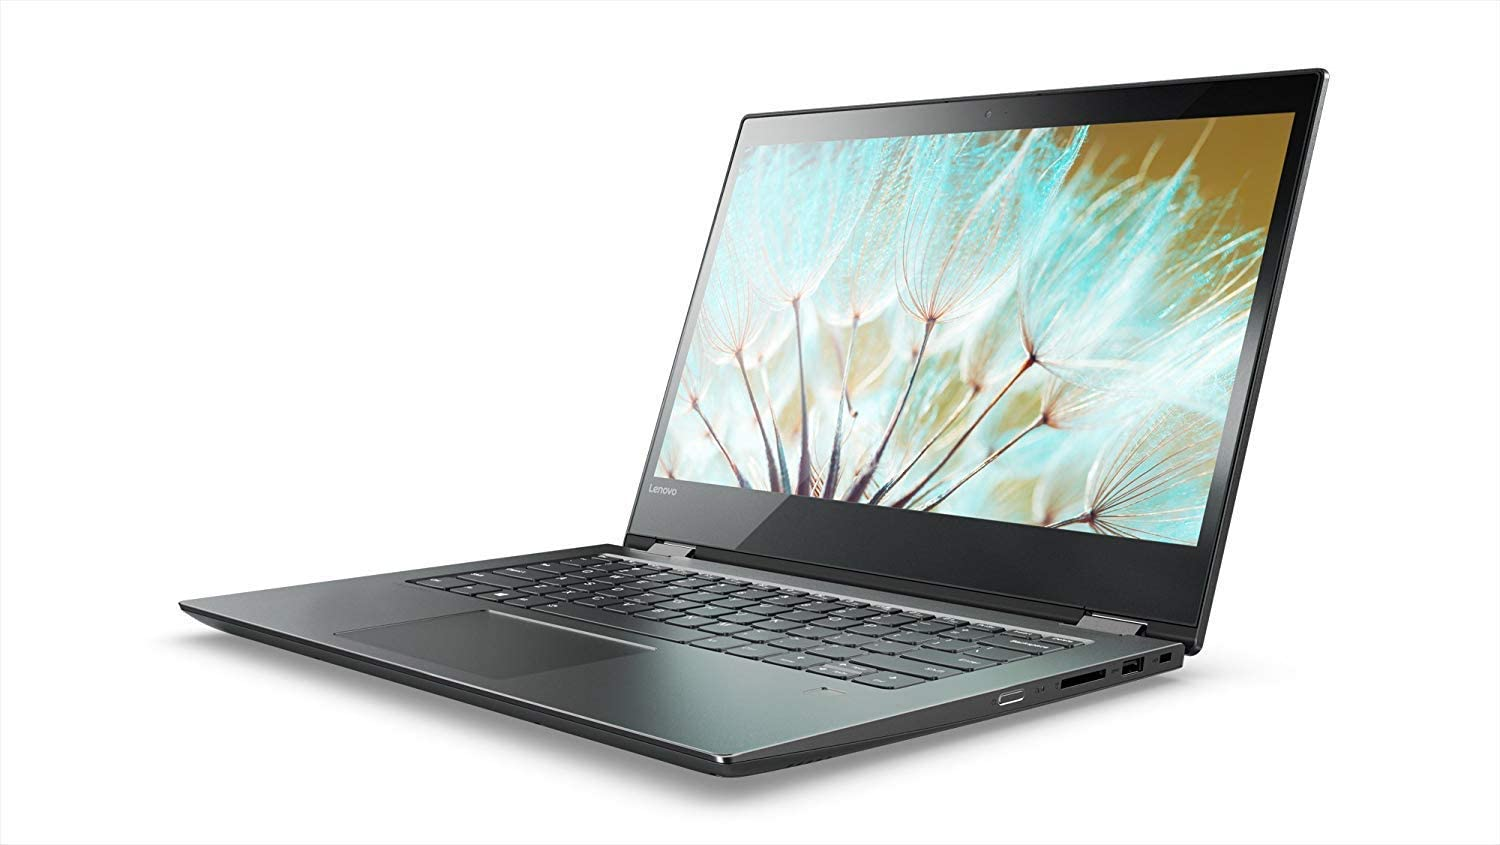 "Lenovo NEW Flex 5 15.6"" FHD IPS Touchscreen 2-in-1 Laptop Tablet, Intel i7-8550U up to 4GHz, 16GB DDR4, 512GB SSD PCIe, HDMI, Bluetooth, Fingerprint Reader, Backlit Keyboard, Windows 10 (Renewed)"